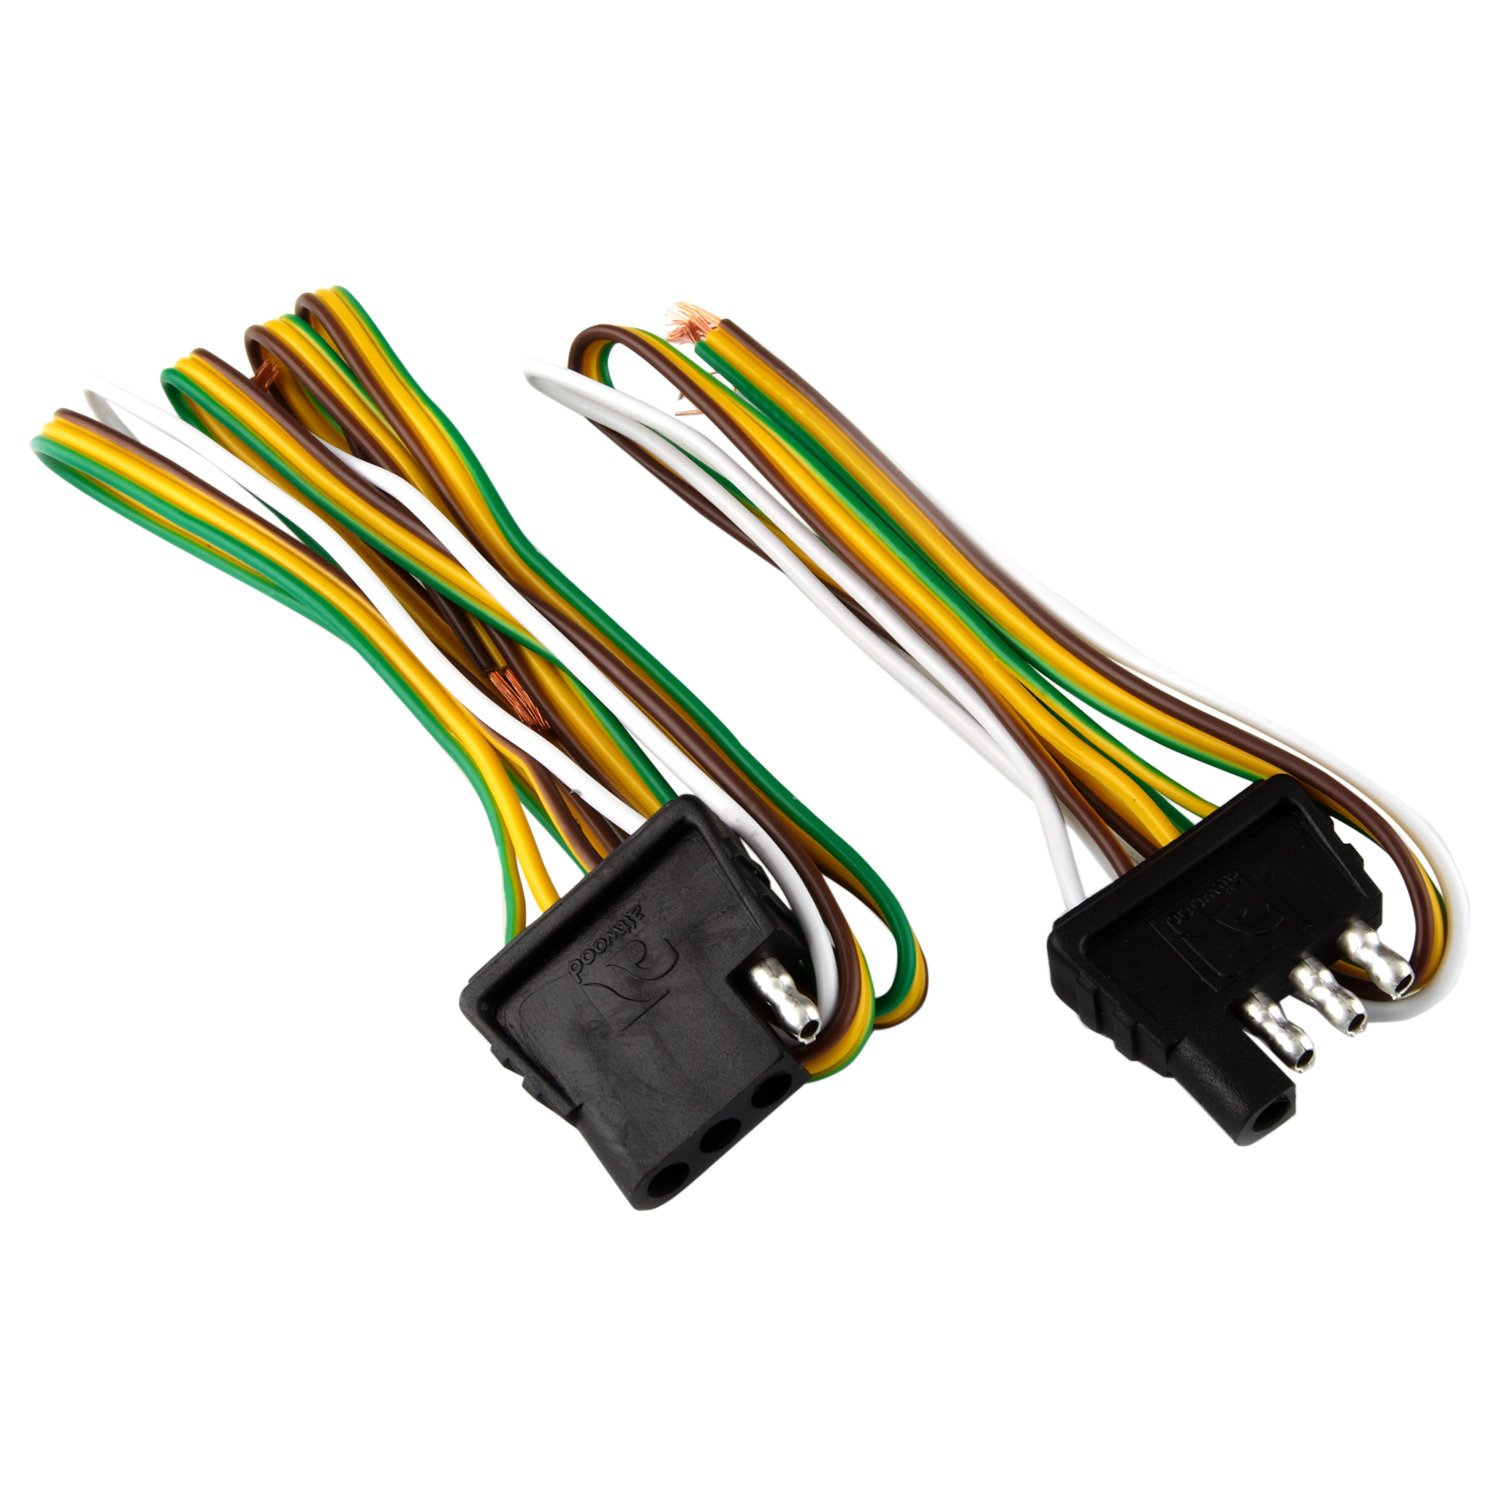 hight resolution of attwood 4 way flat wiring harness kit for vehicles and trailers academy